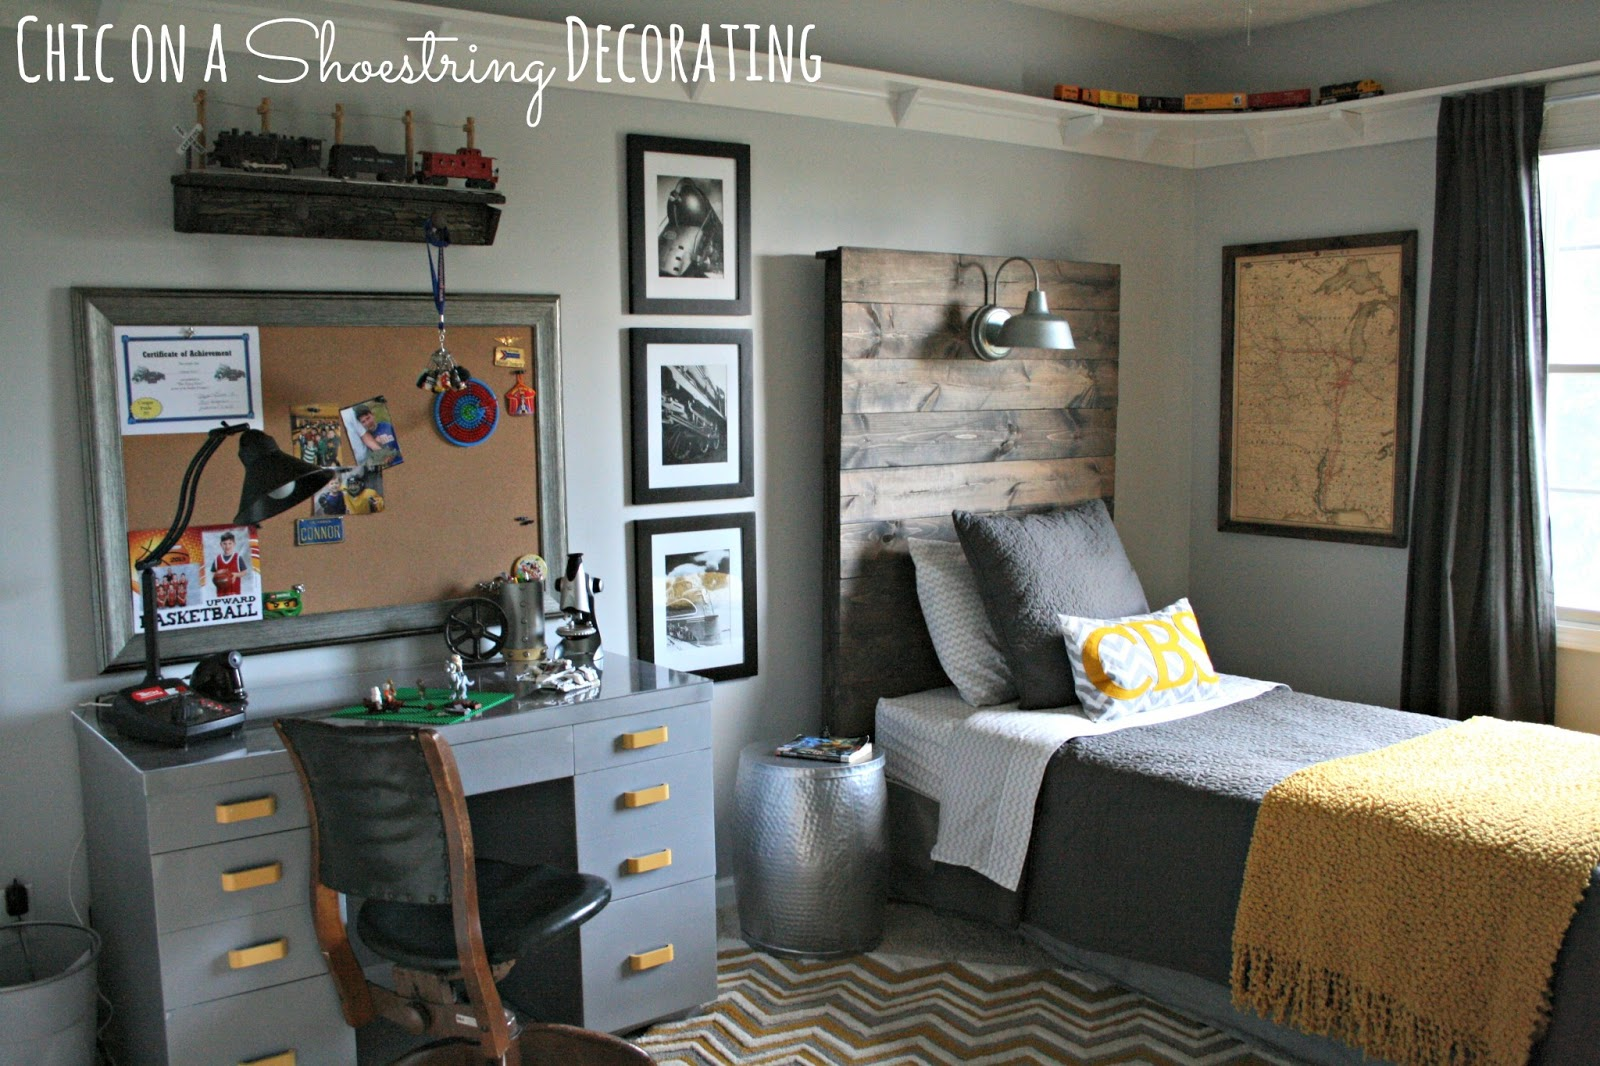 Chic On A Shoestring Decorating Bigger Boy Room Reveal Interiors Inside Ideas Interiors design about Everything [magnanprojects.com]